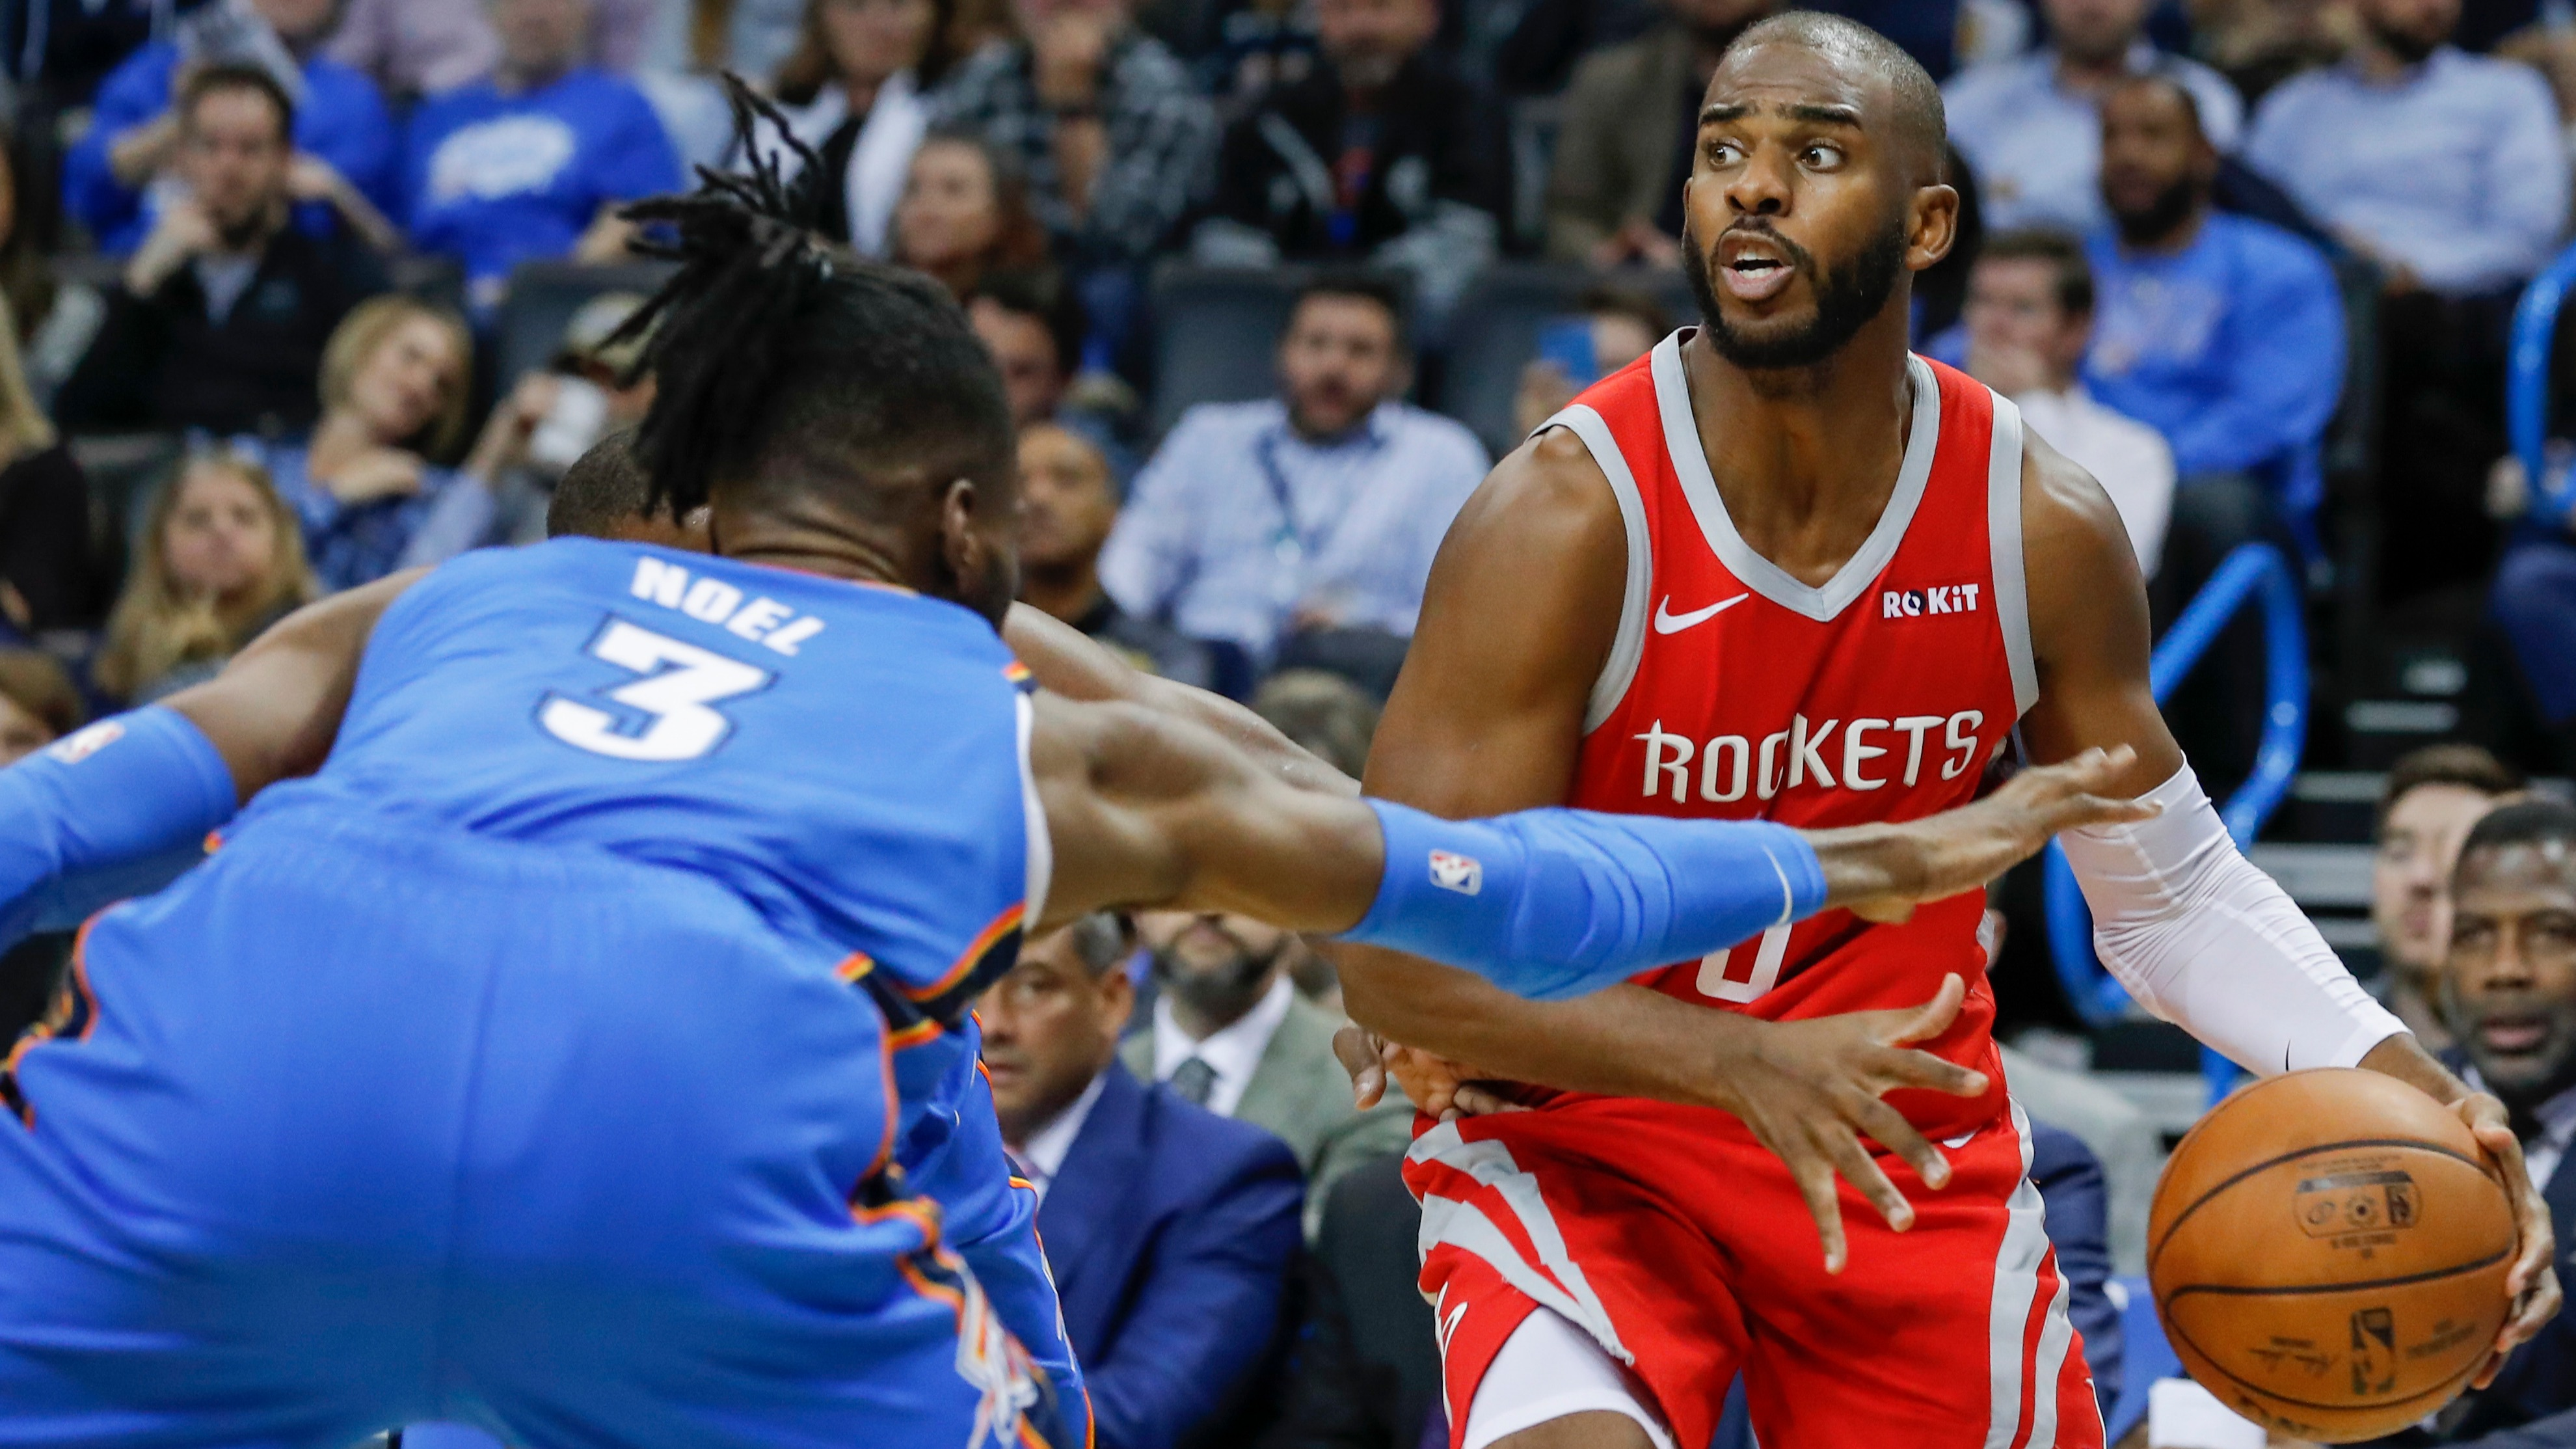 NBA futures odds updated ahead of 2019 playoffs: Rockets